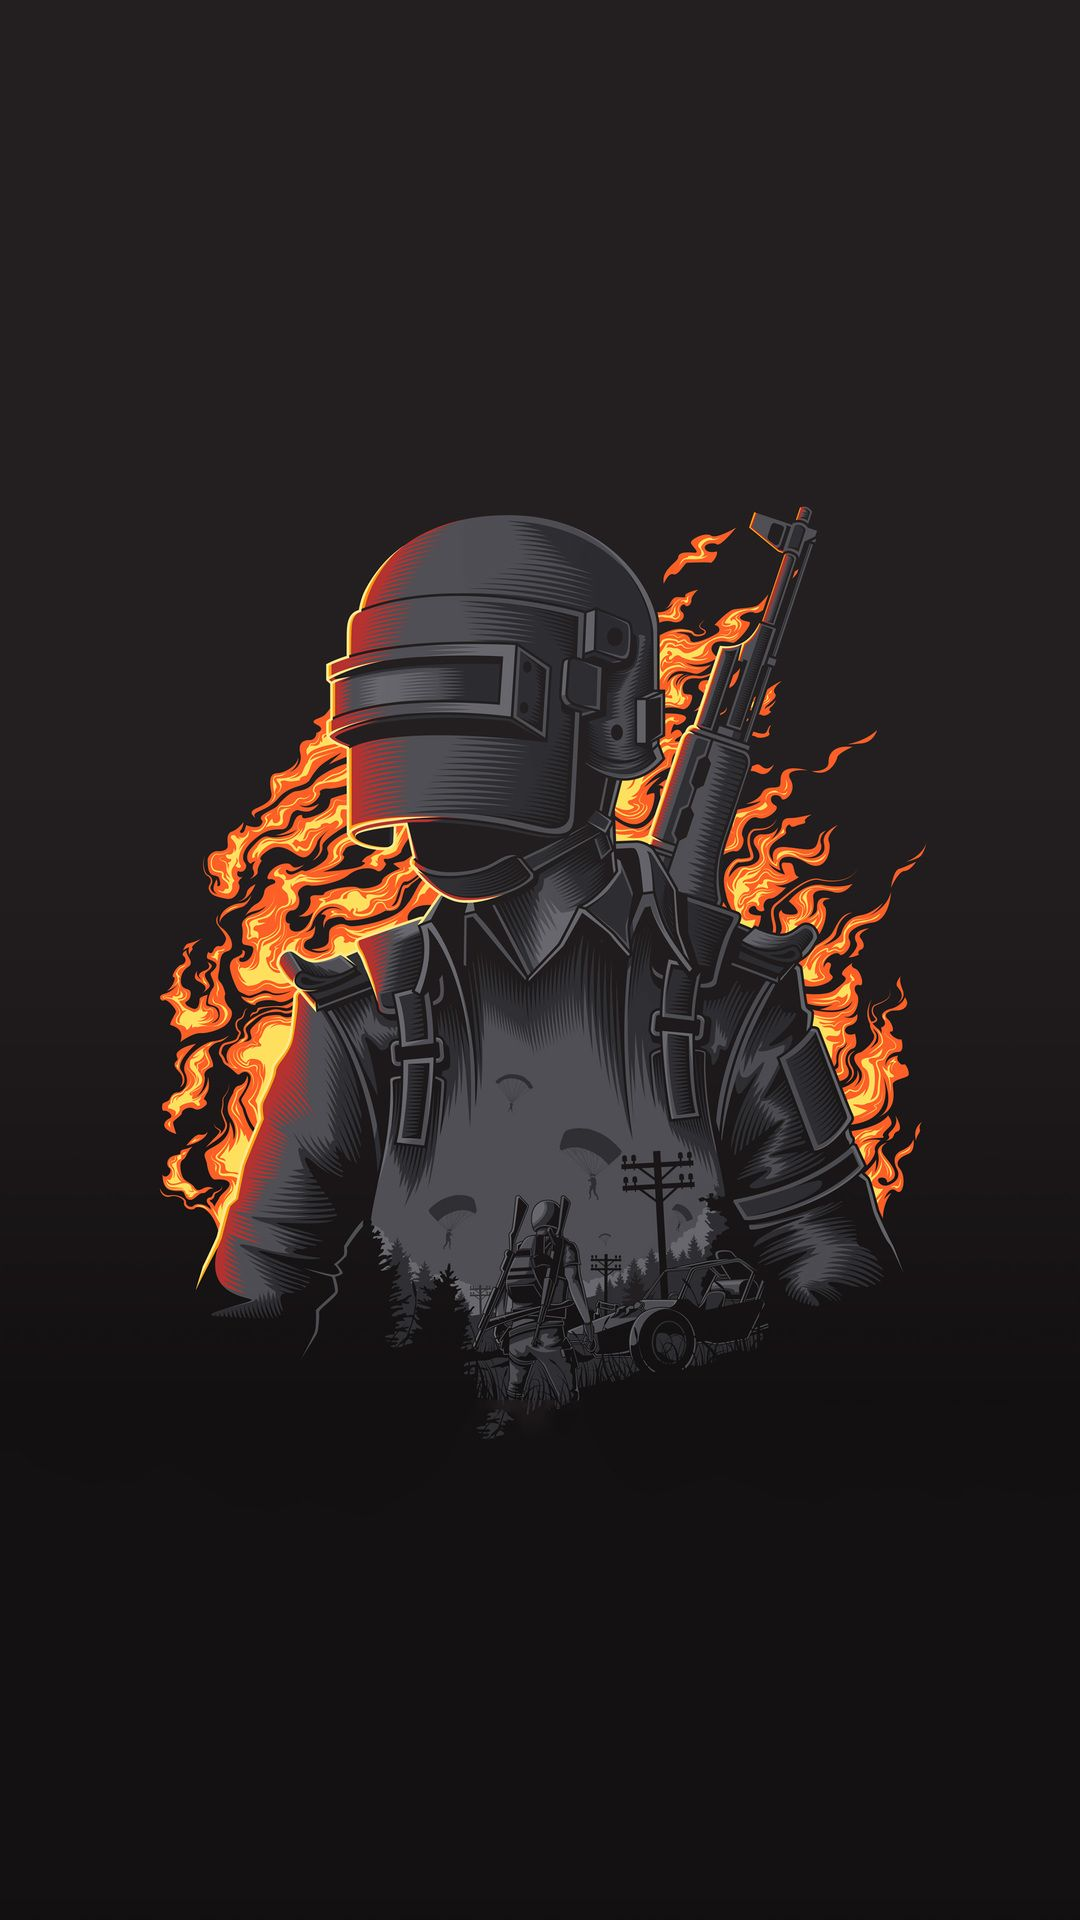 500 Pubg Wallpapers Download In High Quality 4k Wallpaper Hd Game Wallpaper Iphone Iphone 6s Wallpaper Android Phone Wallpaper